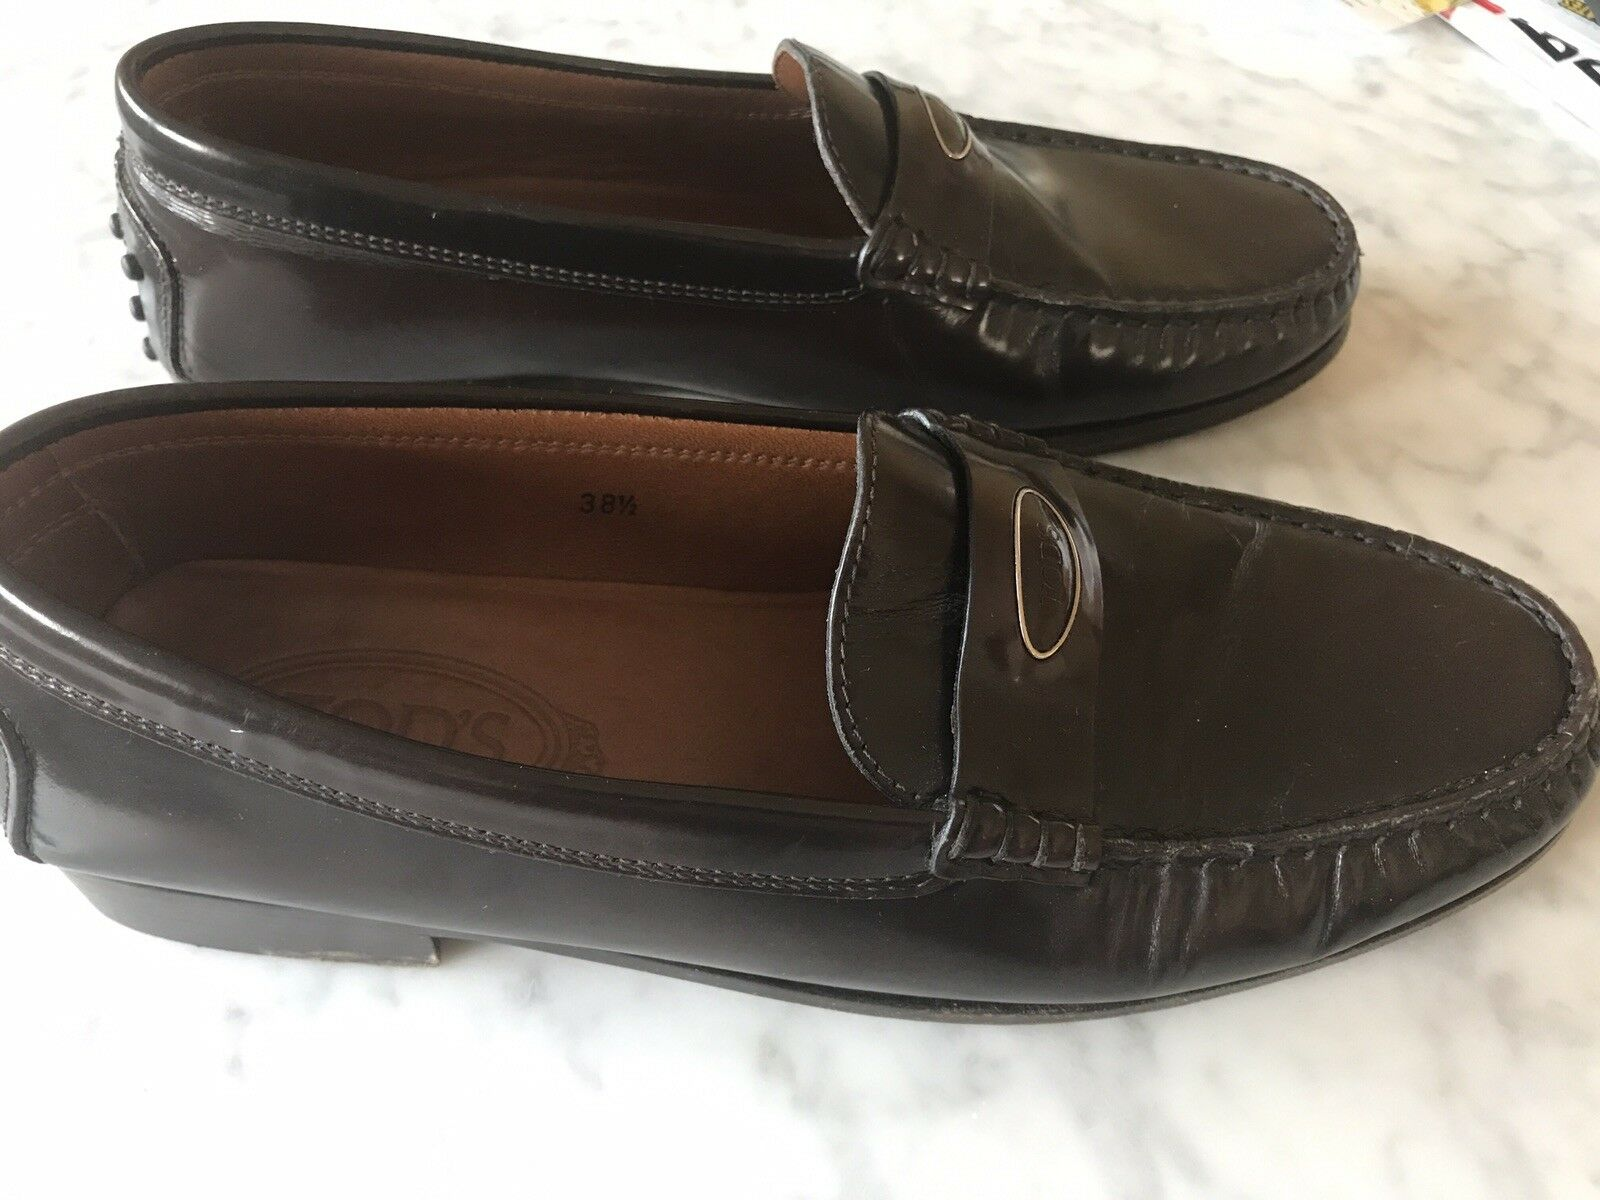 Tods Chocolate Loafer Brown Leather Flats Penny Loafer Chocolate Shoes 38.5 Italy 8a755b